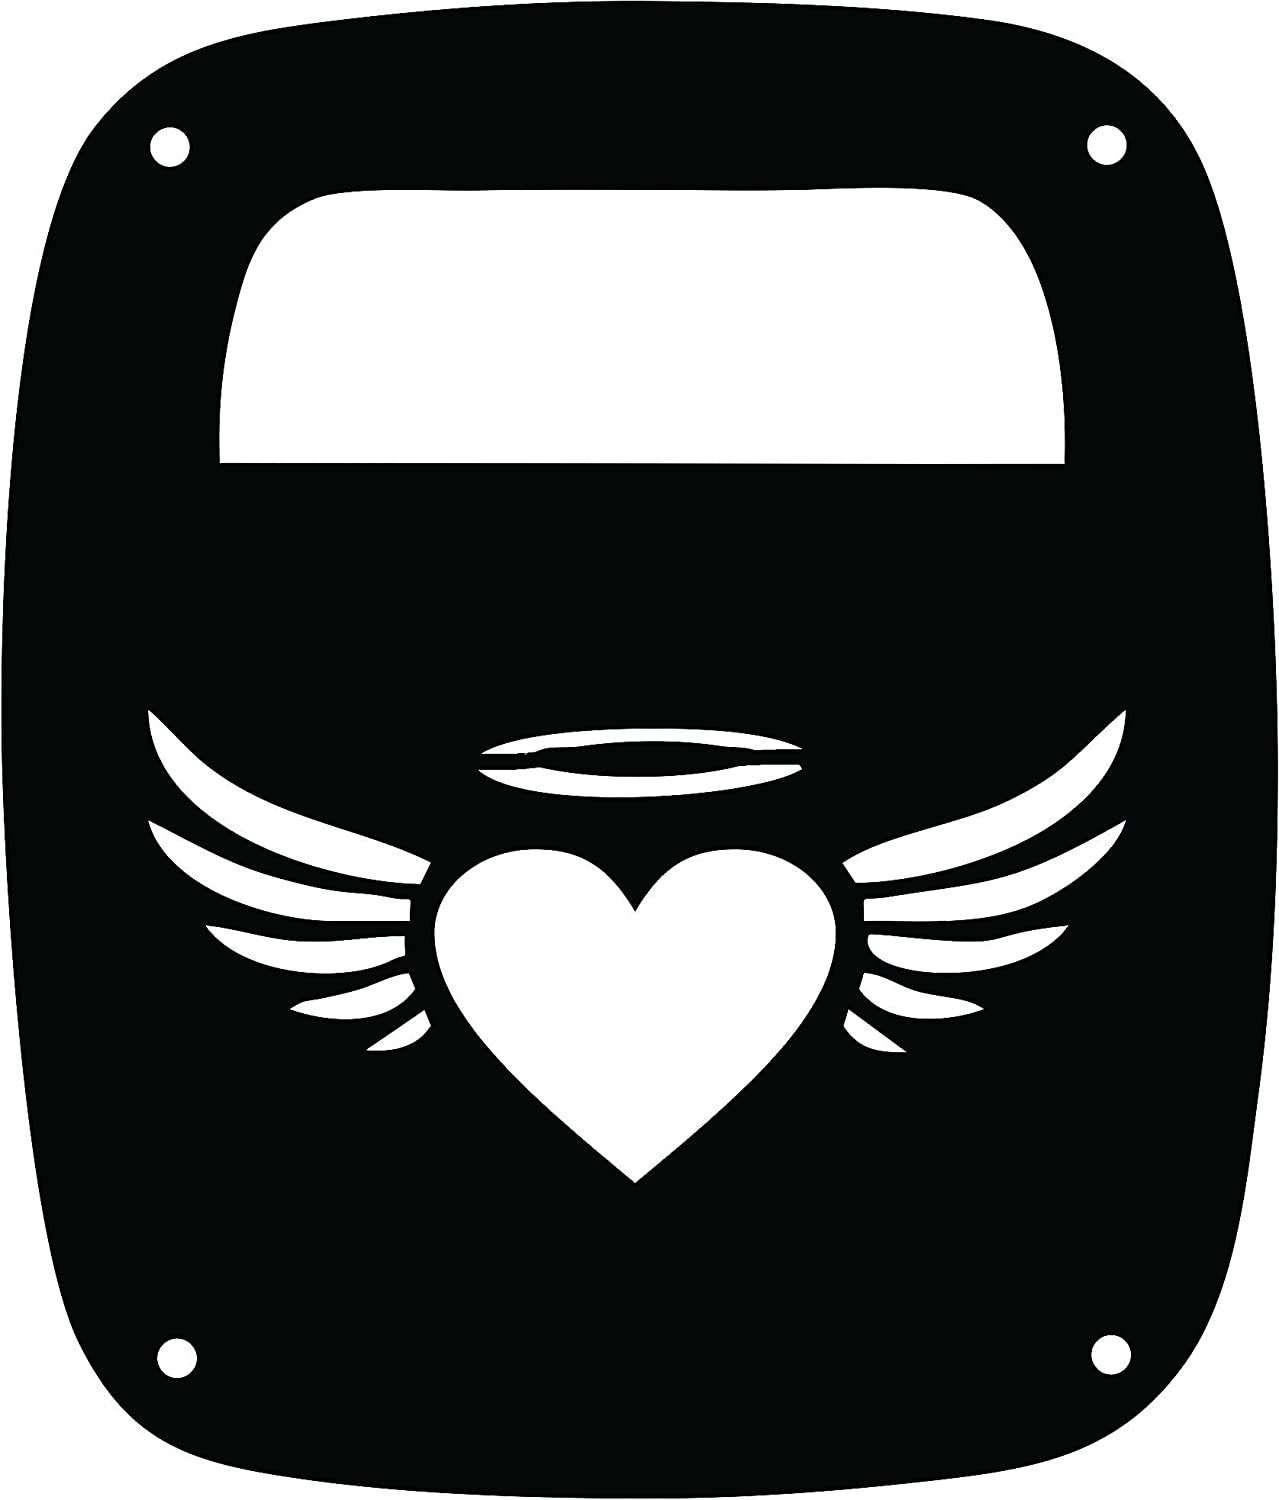 JeepTails Angel Heart Tail lamp Light Covers Compatible with Jeep Wrangler YJ and TJ Set of 2 Black